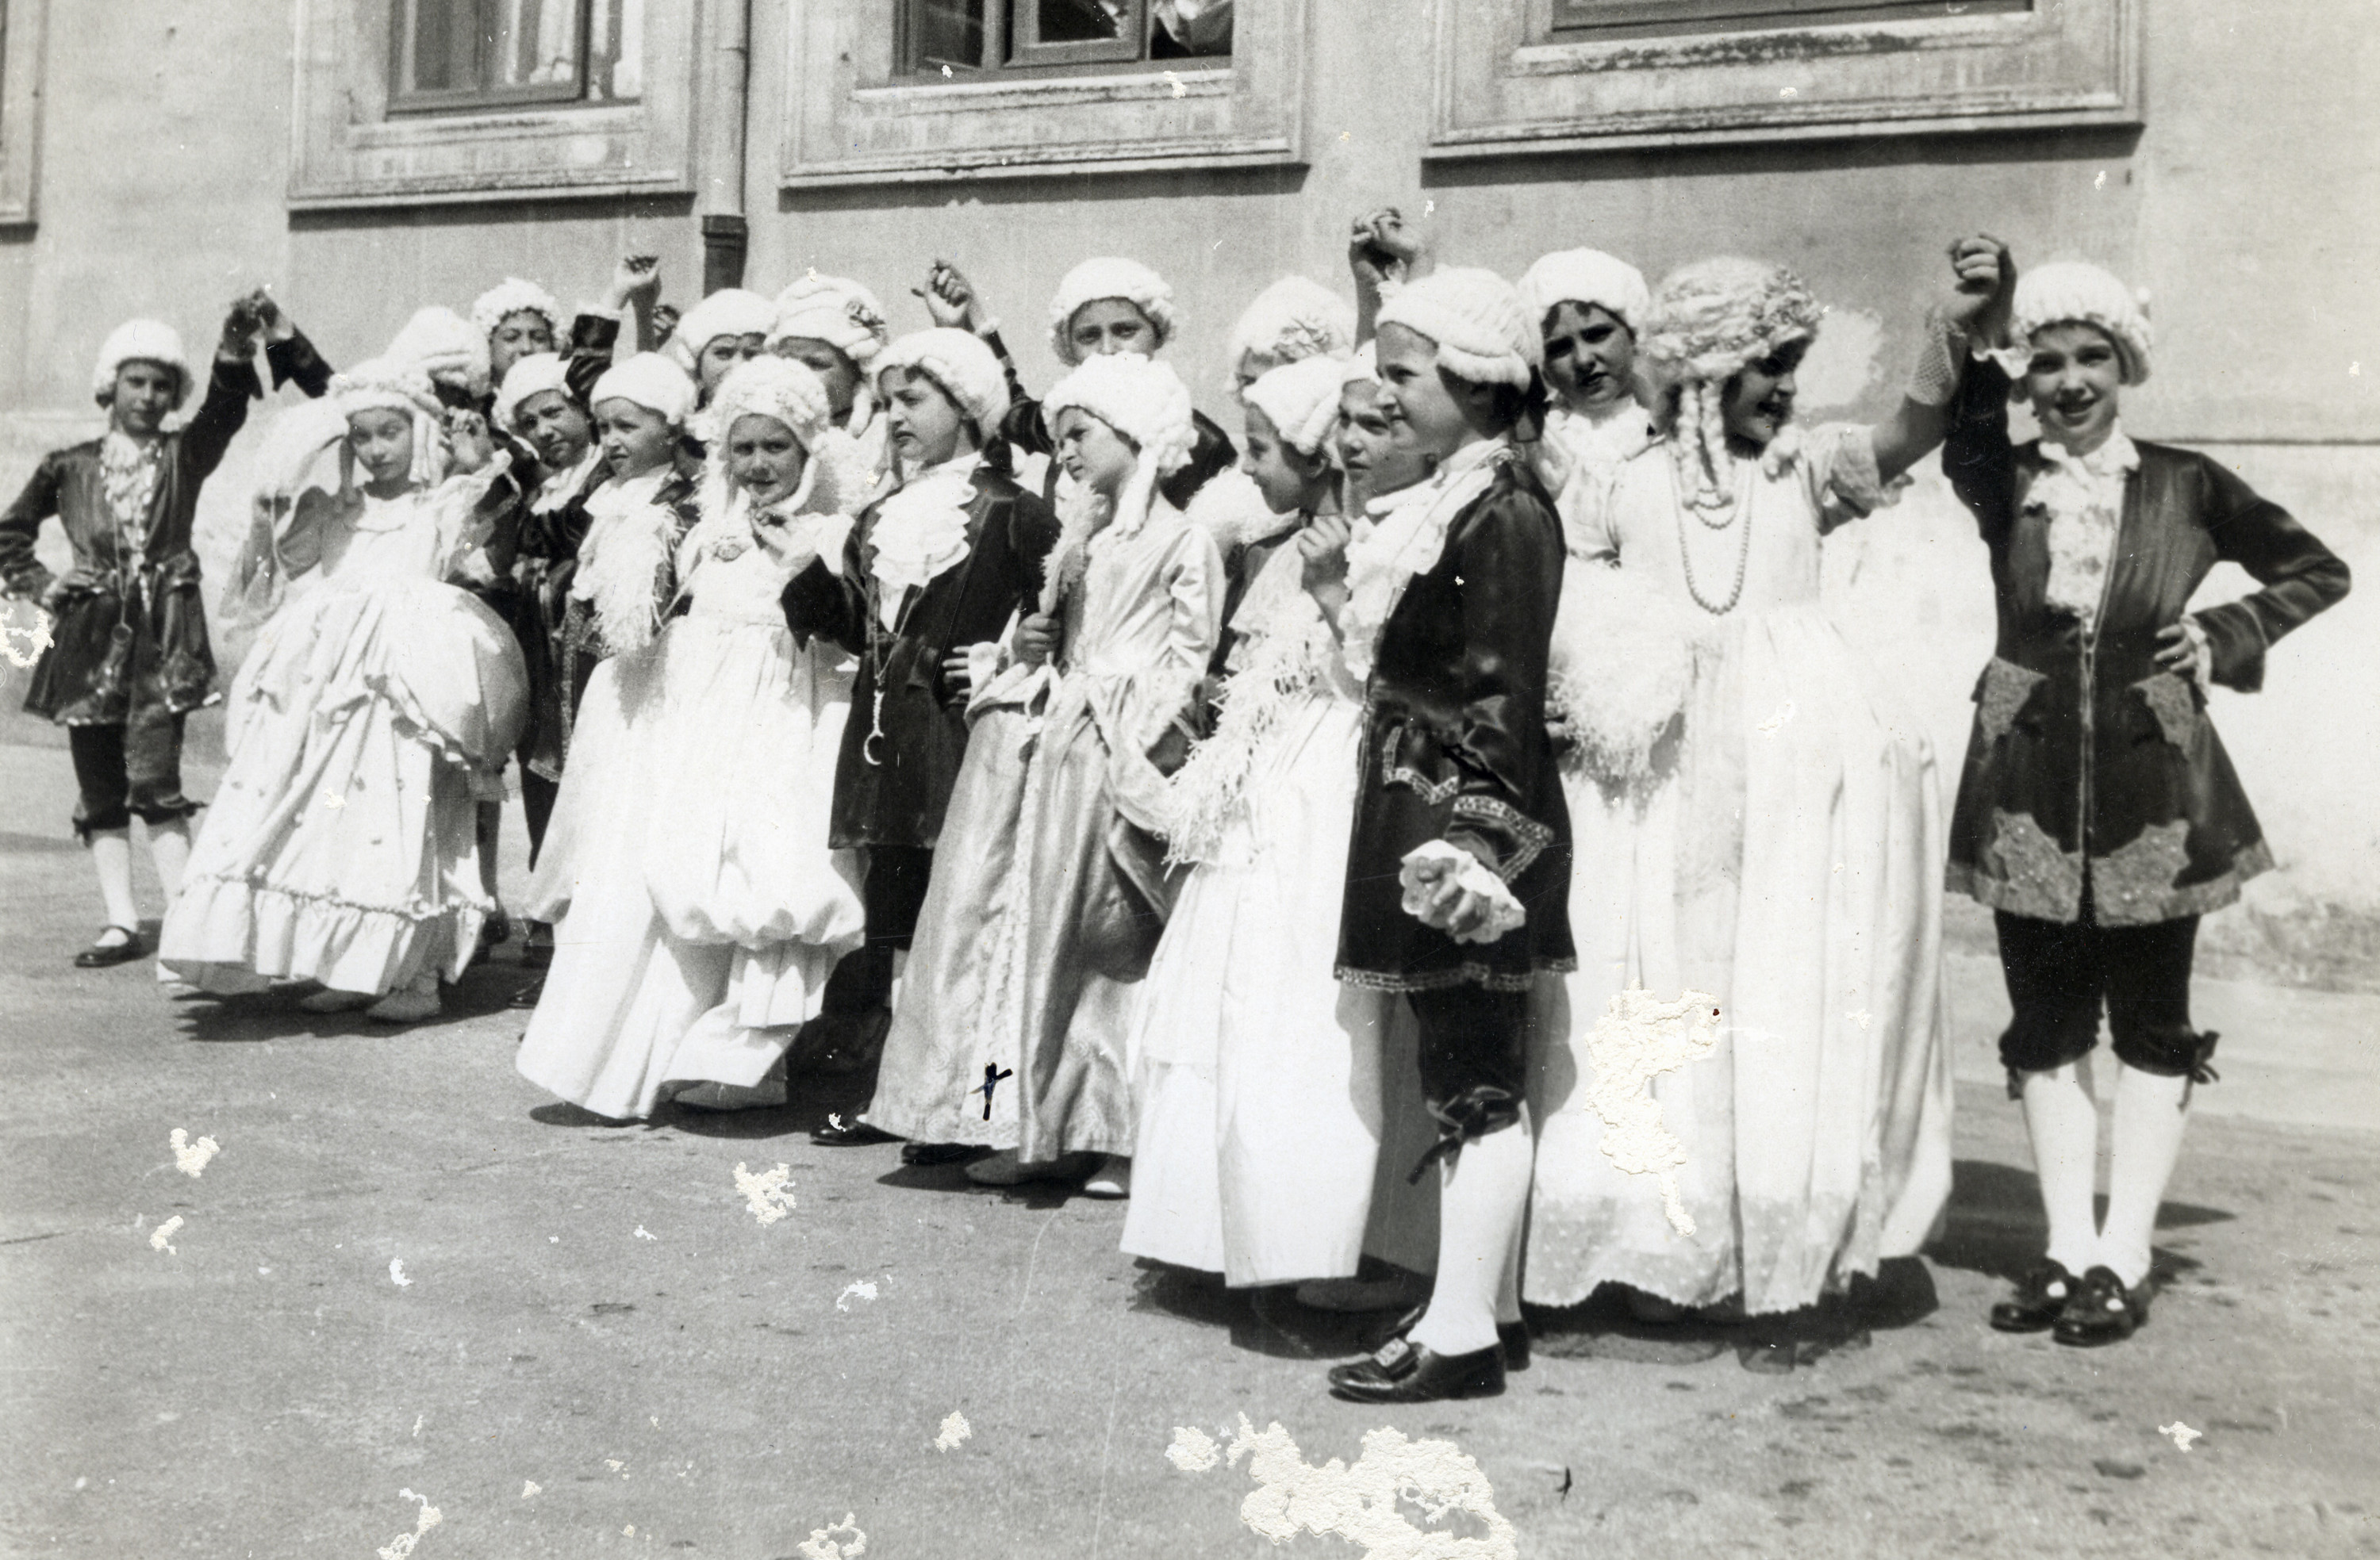 Italian Jewish children in costume celebrate Purim.  Among those pictured is Emma Di Capua (front row, front from right).